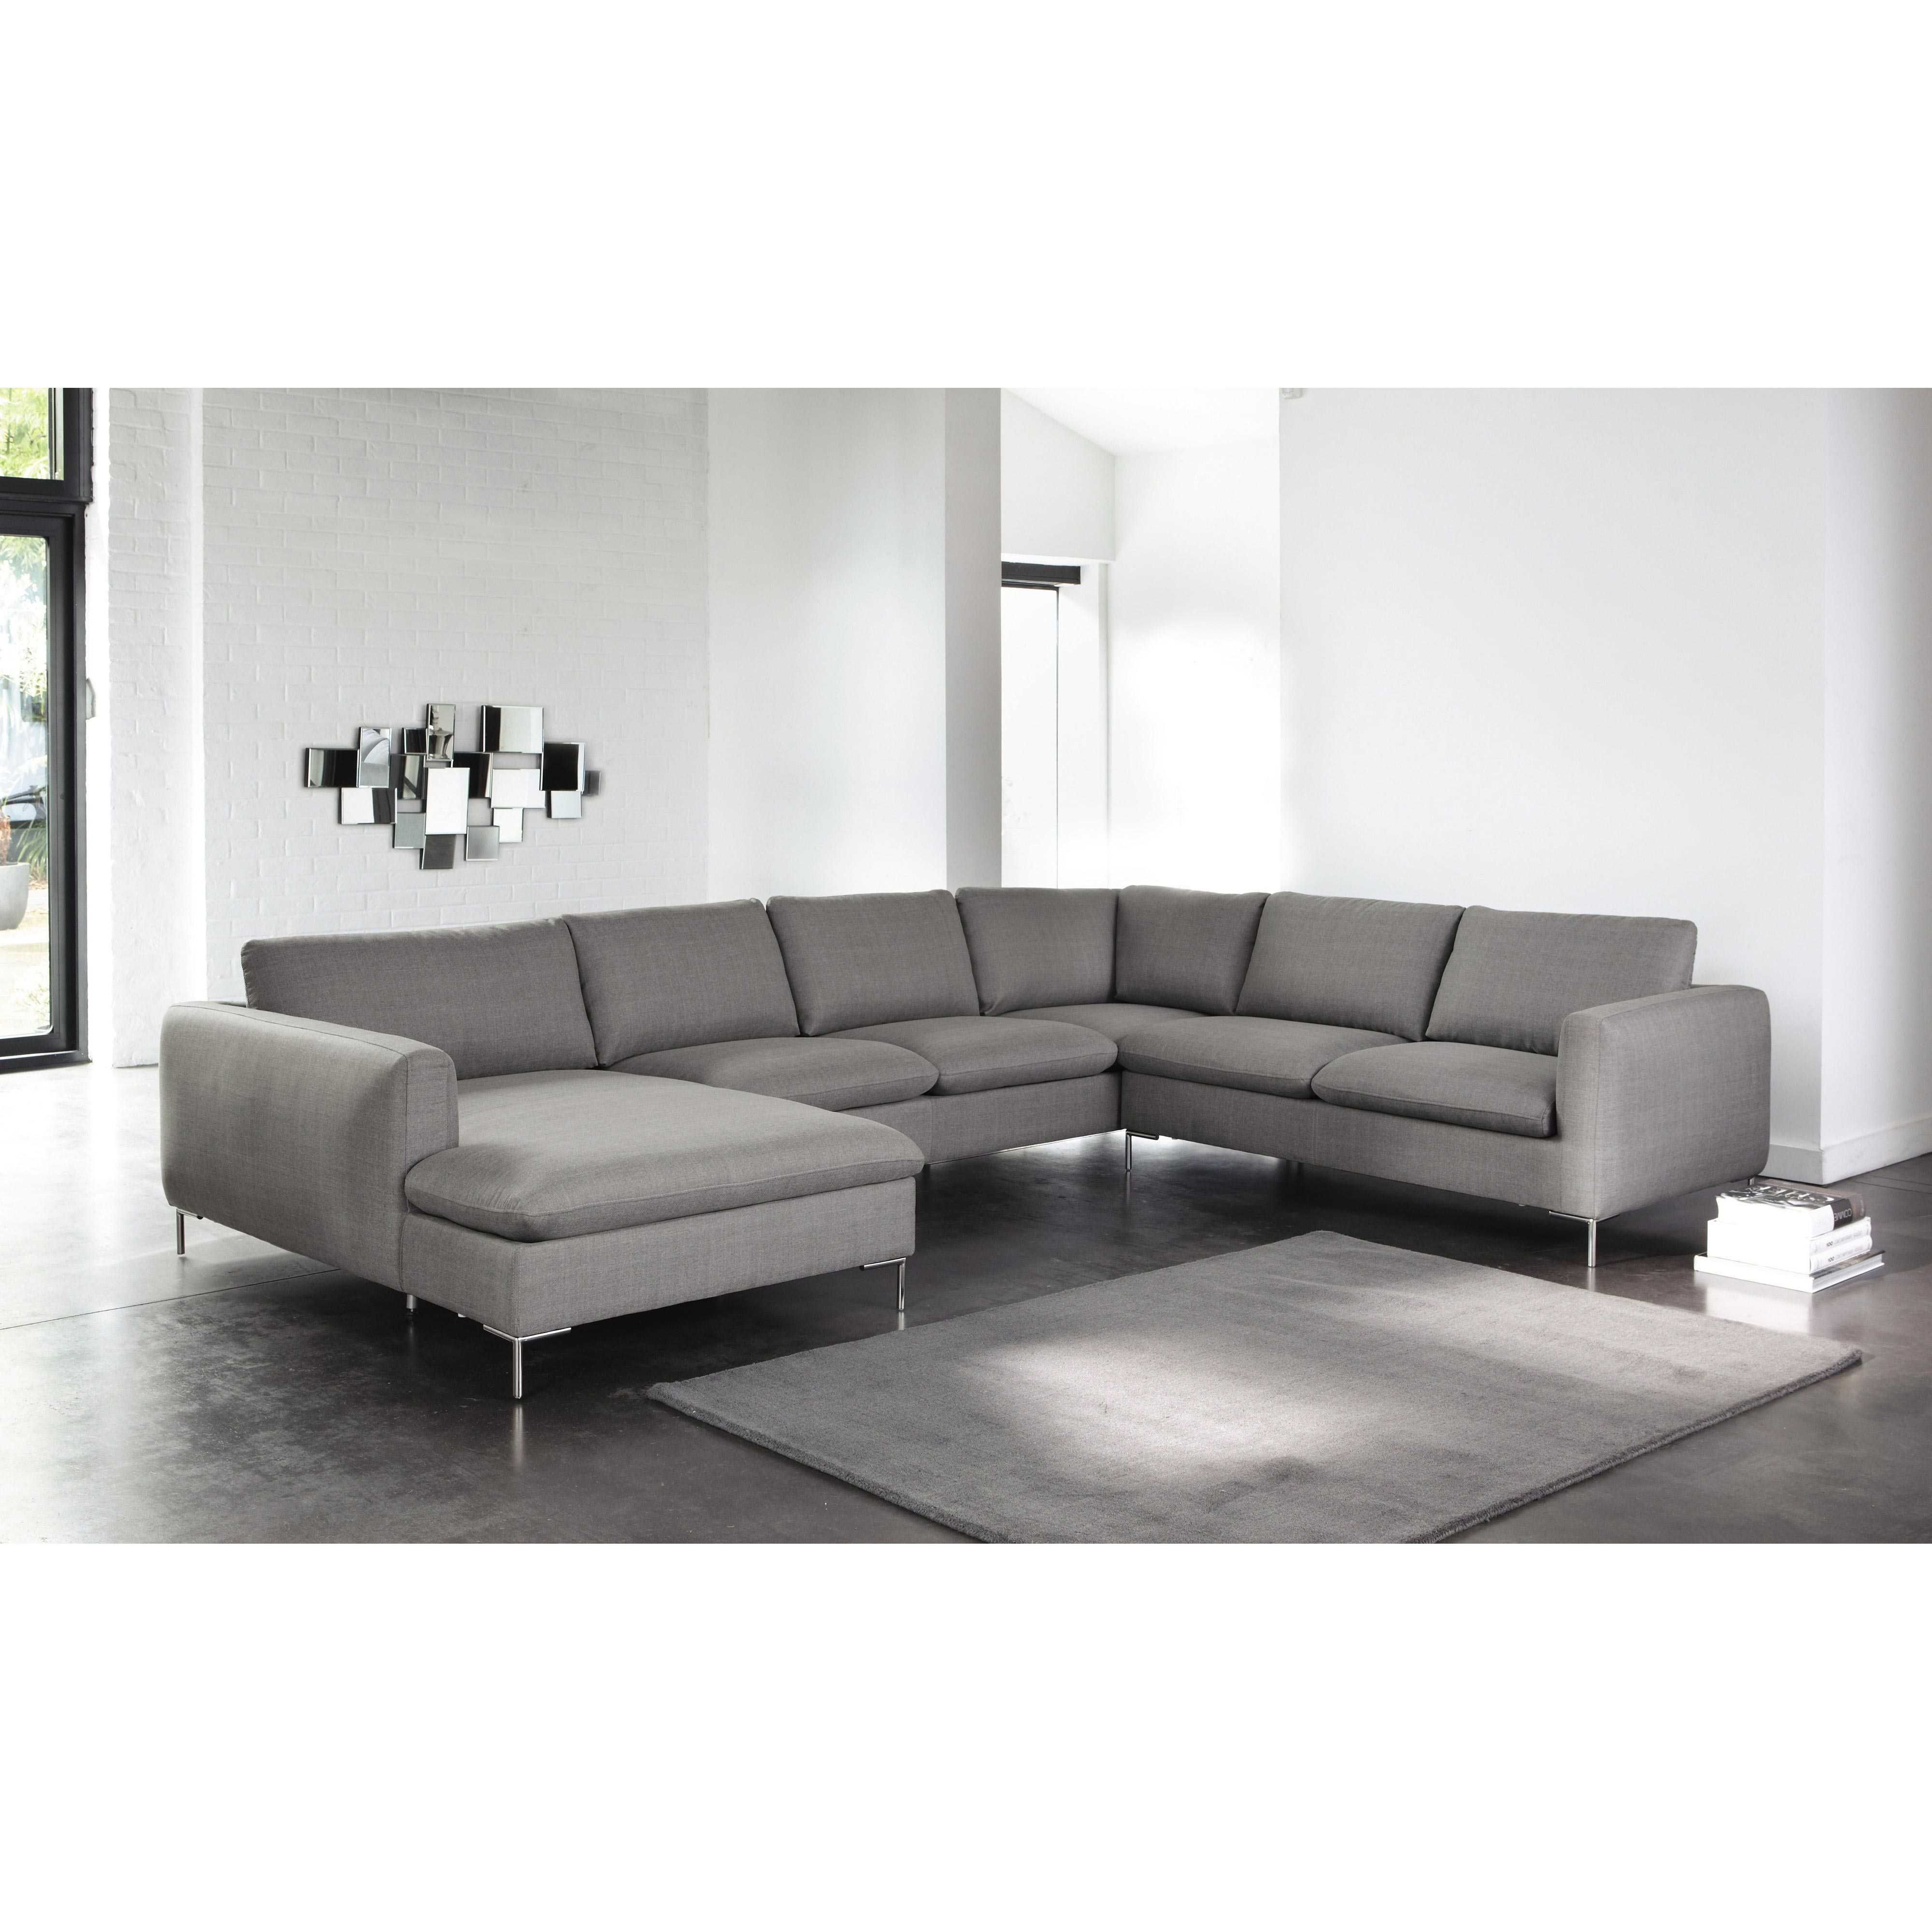 Maison Du Monde Chaise Longue Fabulous Seater Fabric Corner Sofa In Light Grey City